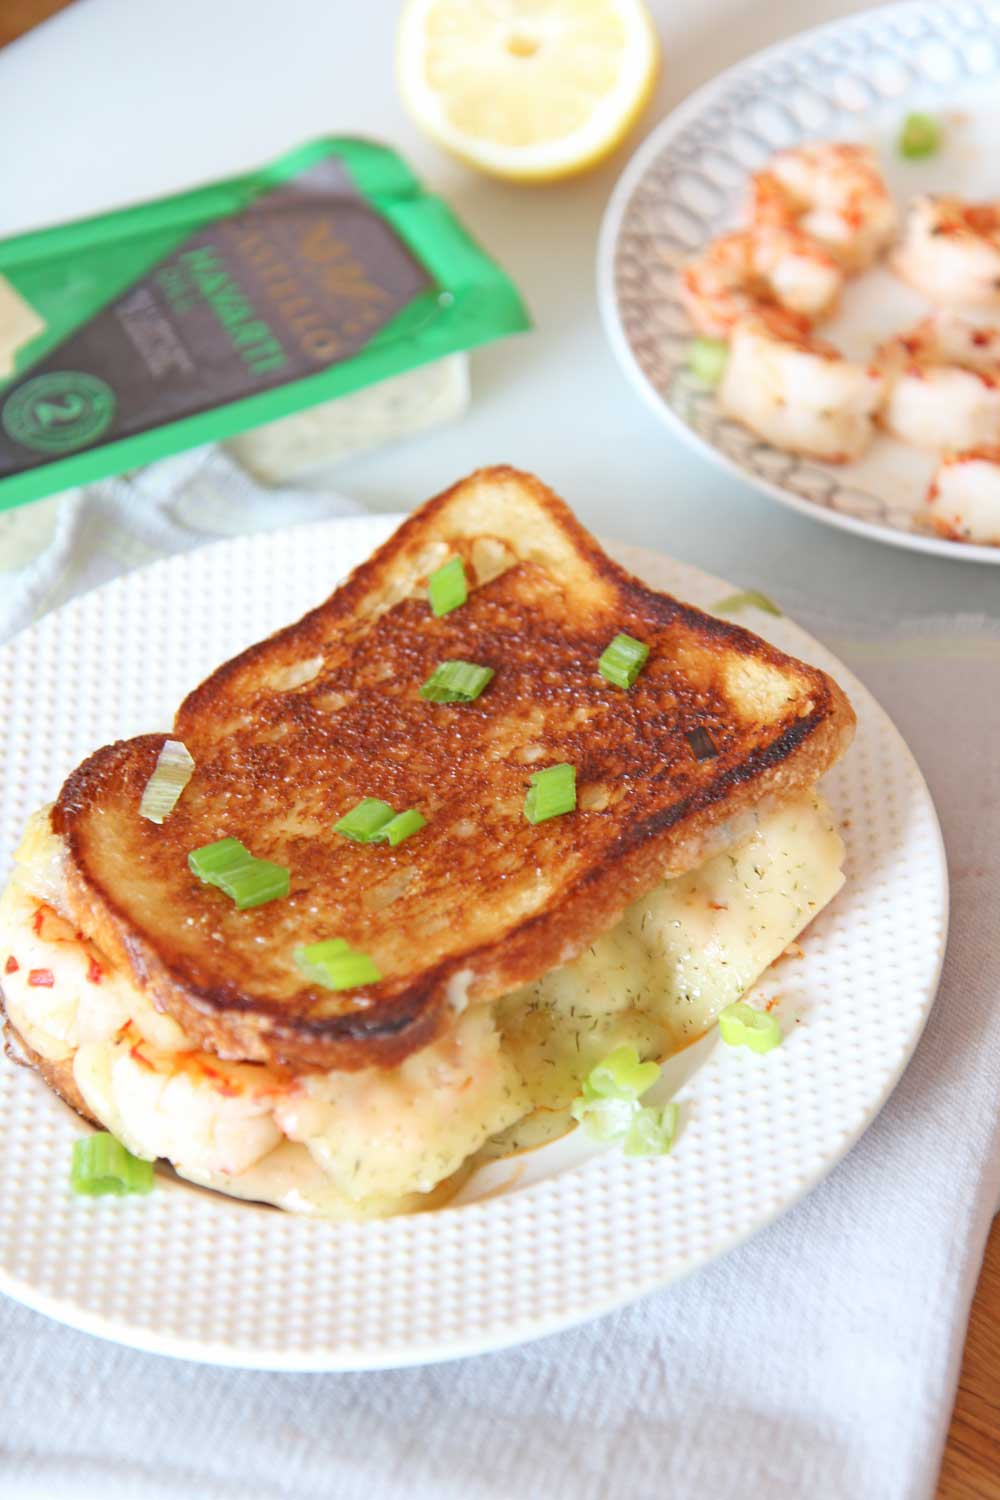 Shrimp and Dill Havarti Grilled Cheese Recipe. Bread, Castello Dill Havarti, mayo, lemon and scallions are all you need. This is a fast crunchy cheesy comfort food delight for a happy dinner. Happy Grilled Cheese Eating! www.ChopHappy.com #Ad #CastelloCheese #GrilledCheese